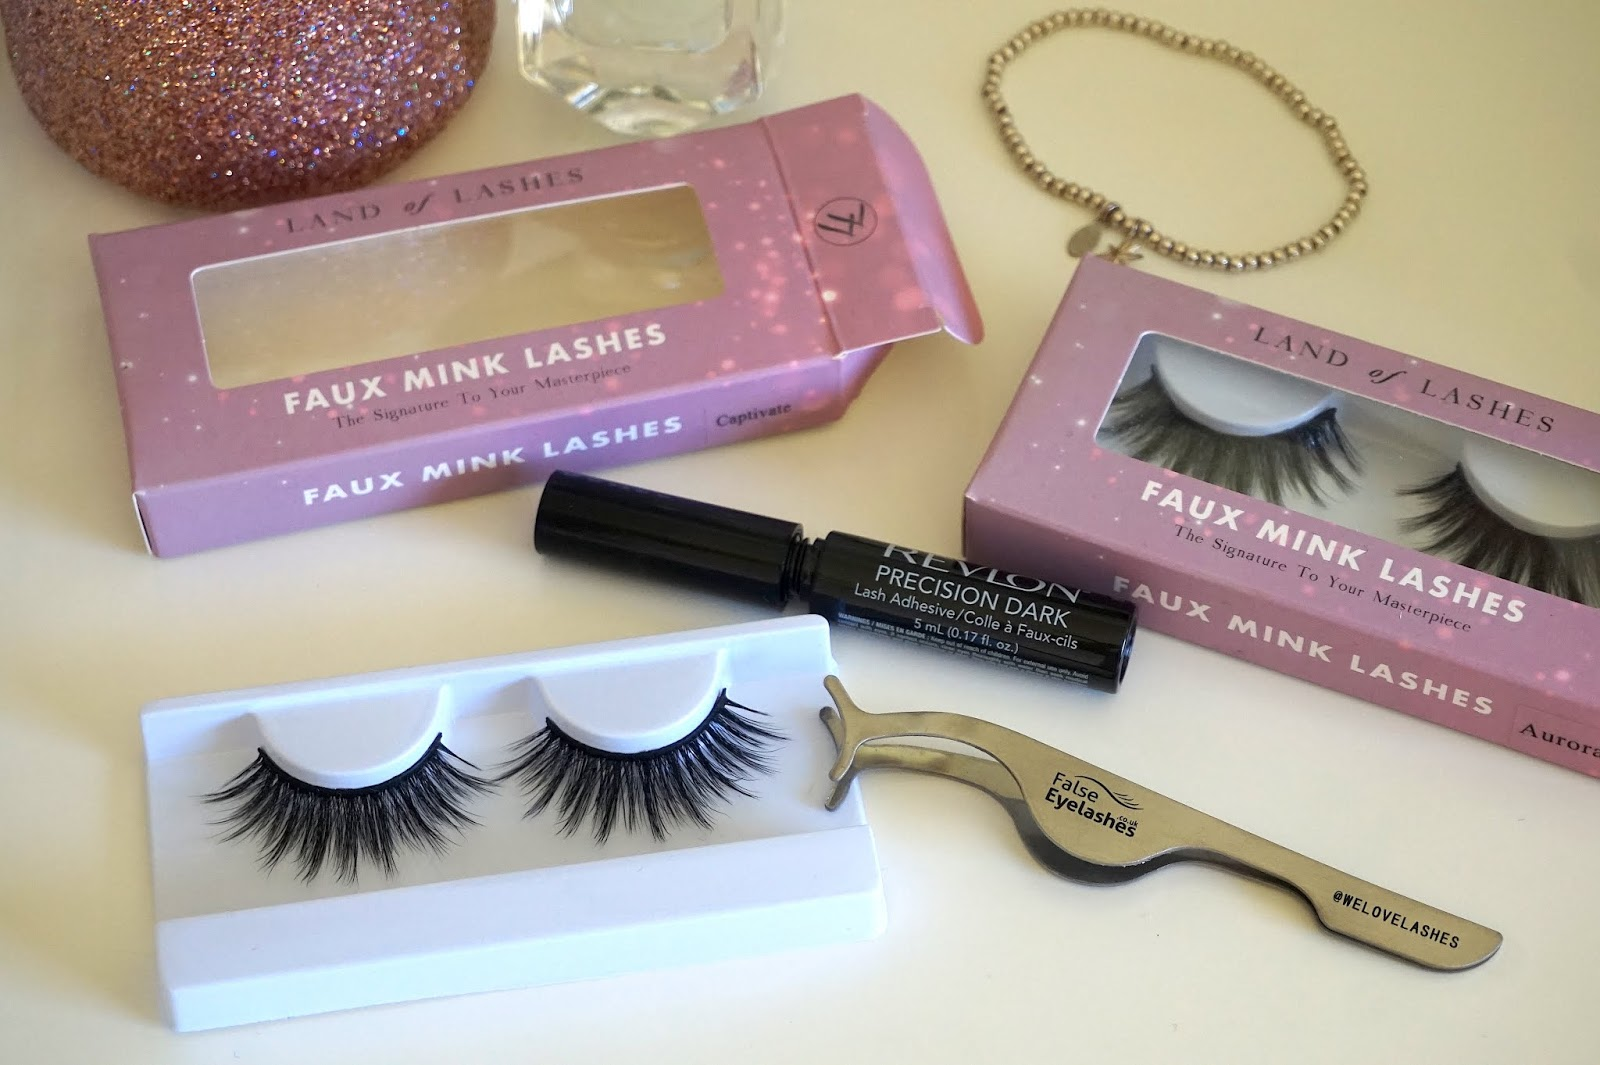 800f0c4568c You can get 10% off your order on Falseeyelashes.co.uk using the code  LASH10, surely that's a good excuse to buy a cocktail?